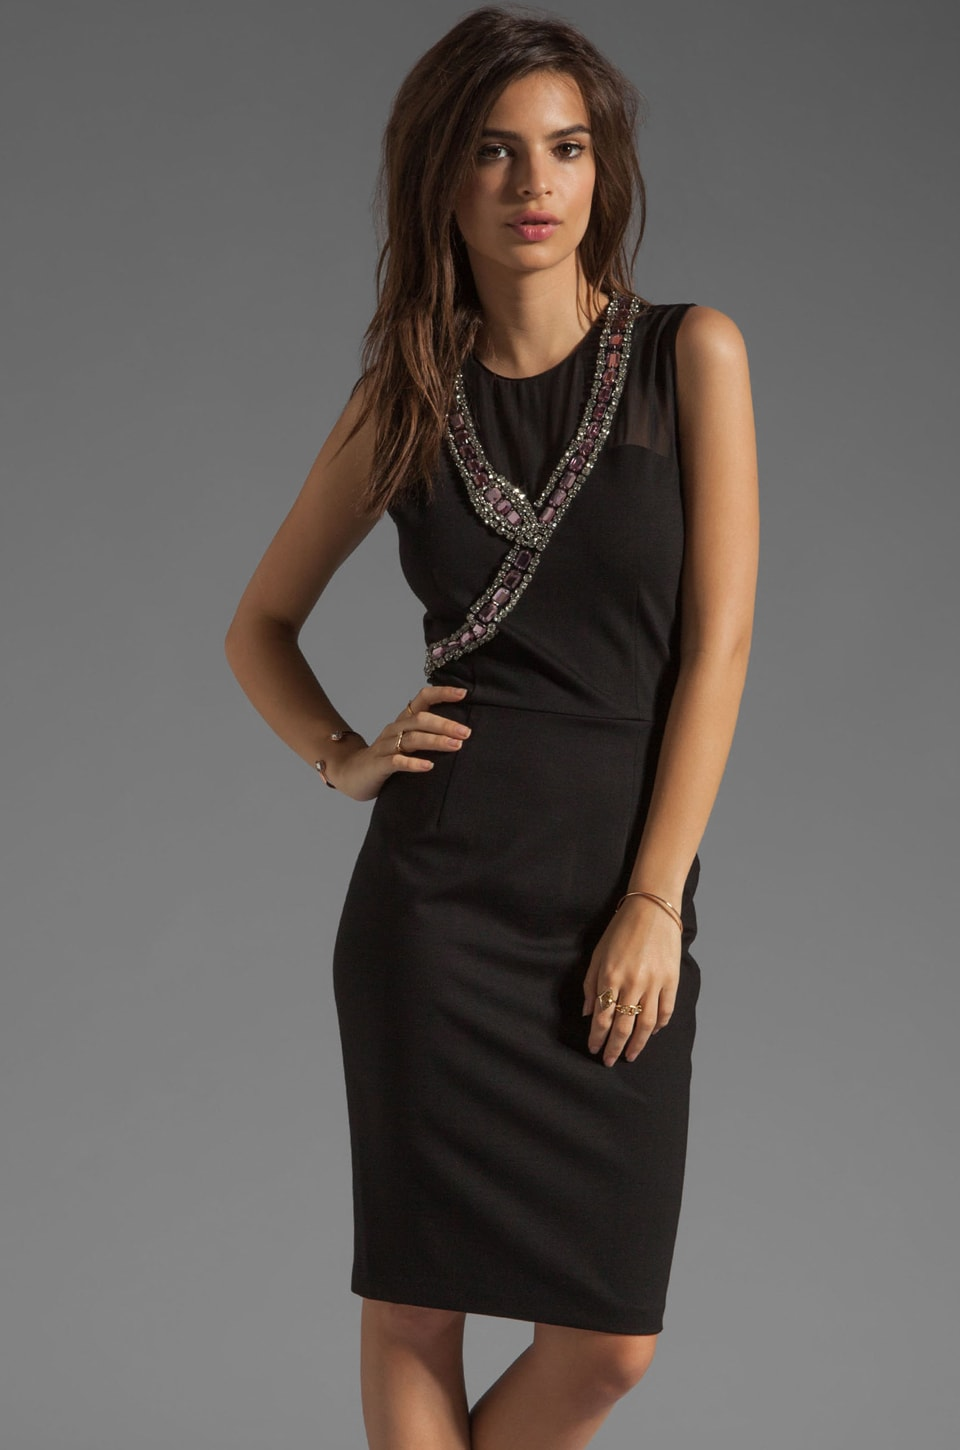 ERIN erin fetherston RUNWAY Snake Dress in Black